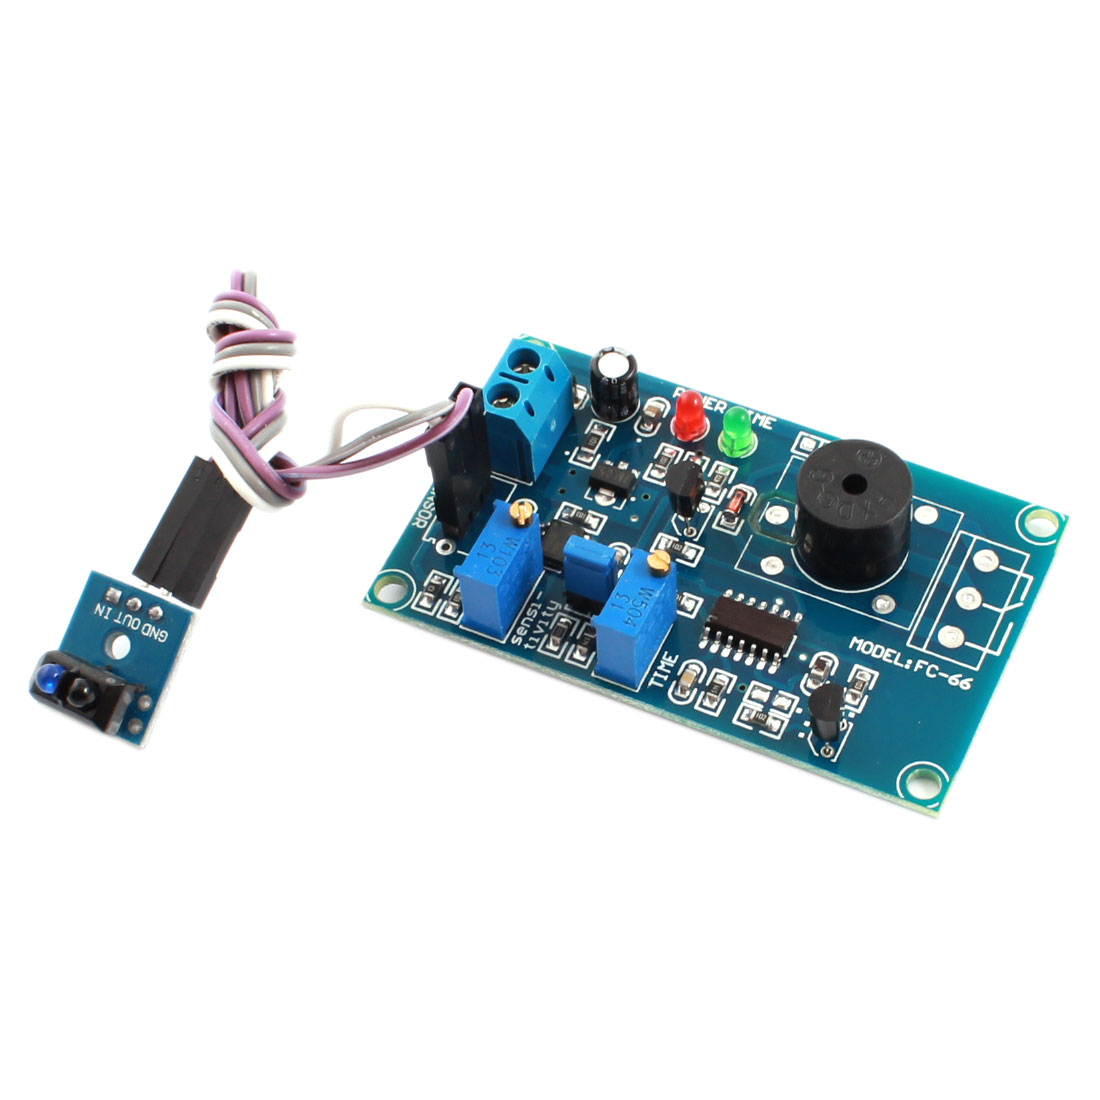 FC-66 TCRT5000 DC 12V 0-20S 0-3cm Adjustable Light Reflection Infrared Sensor Alarm Buzzer Time Delay PCB Module